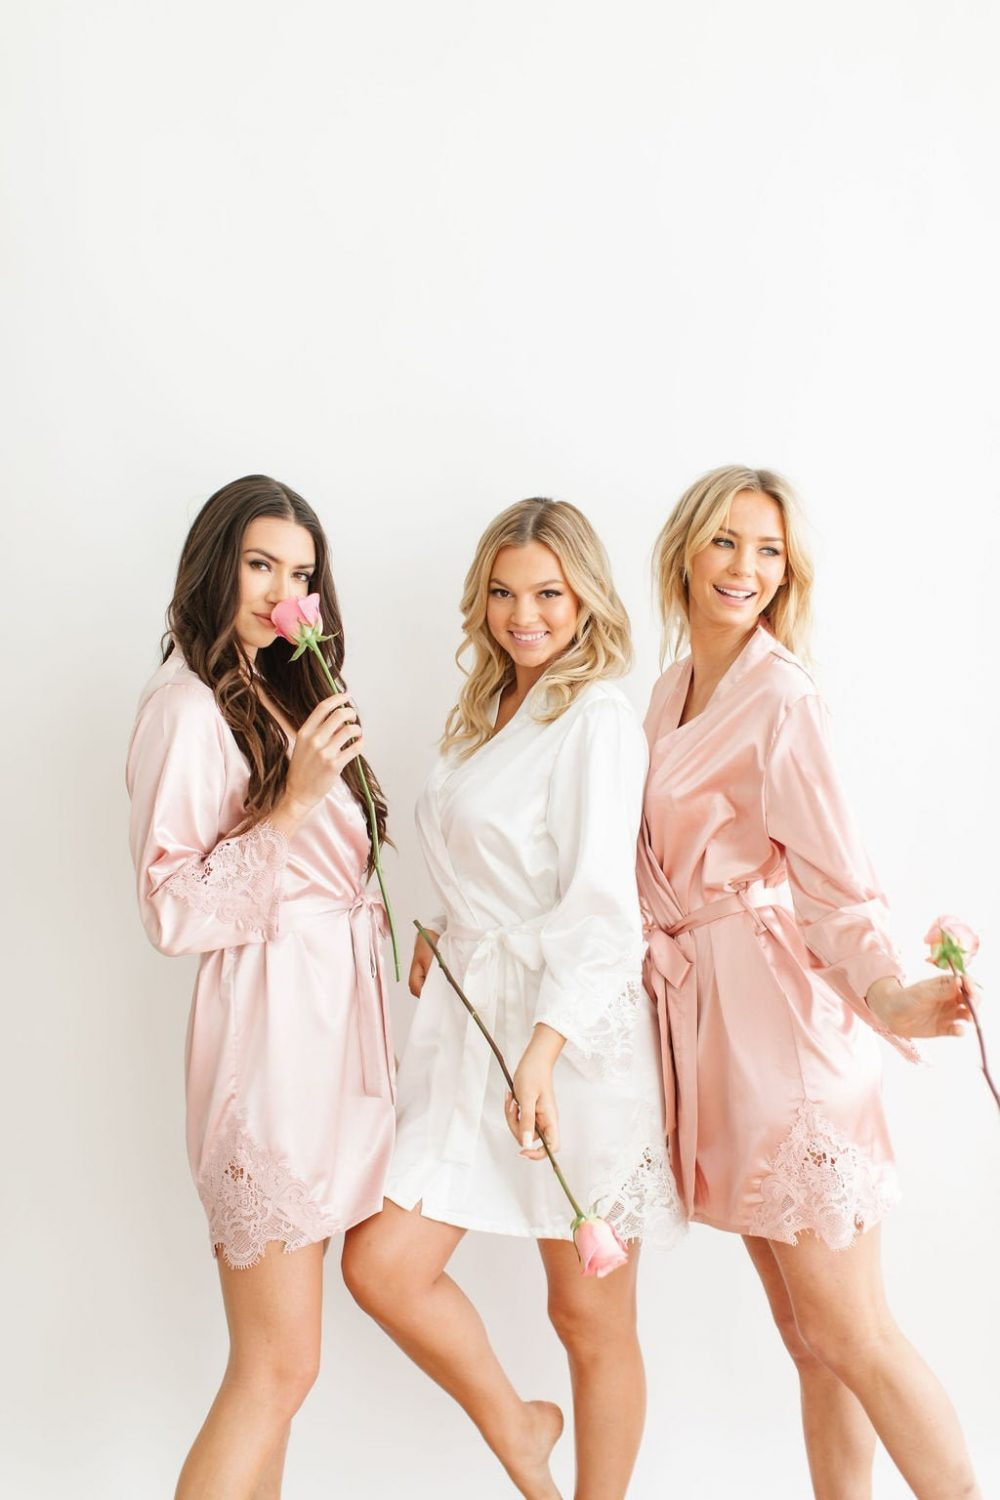 Bridesmaid Robes, Lace Robes With Lace, Gift, Robe, For Bridesmaids, Bridal Pink Wedding